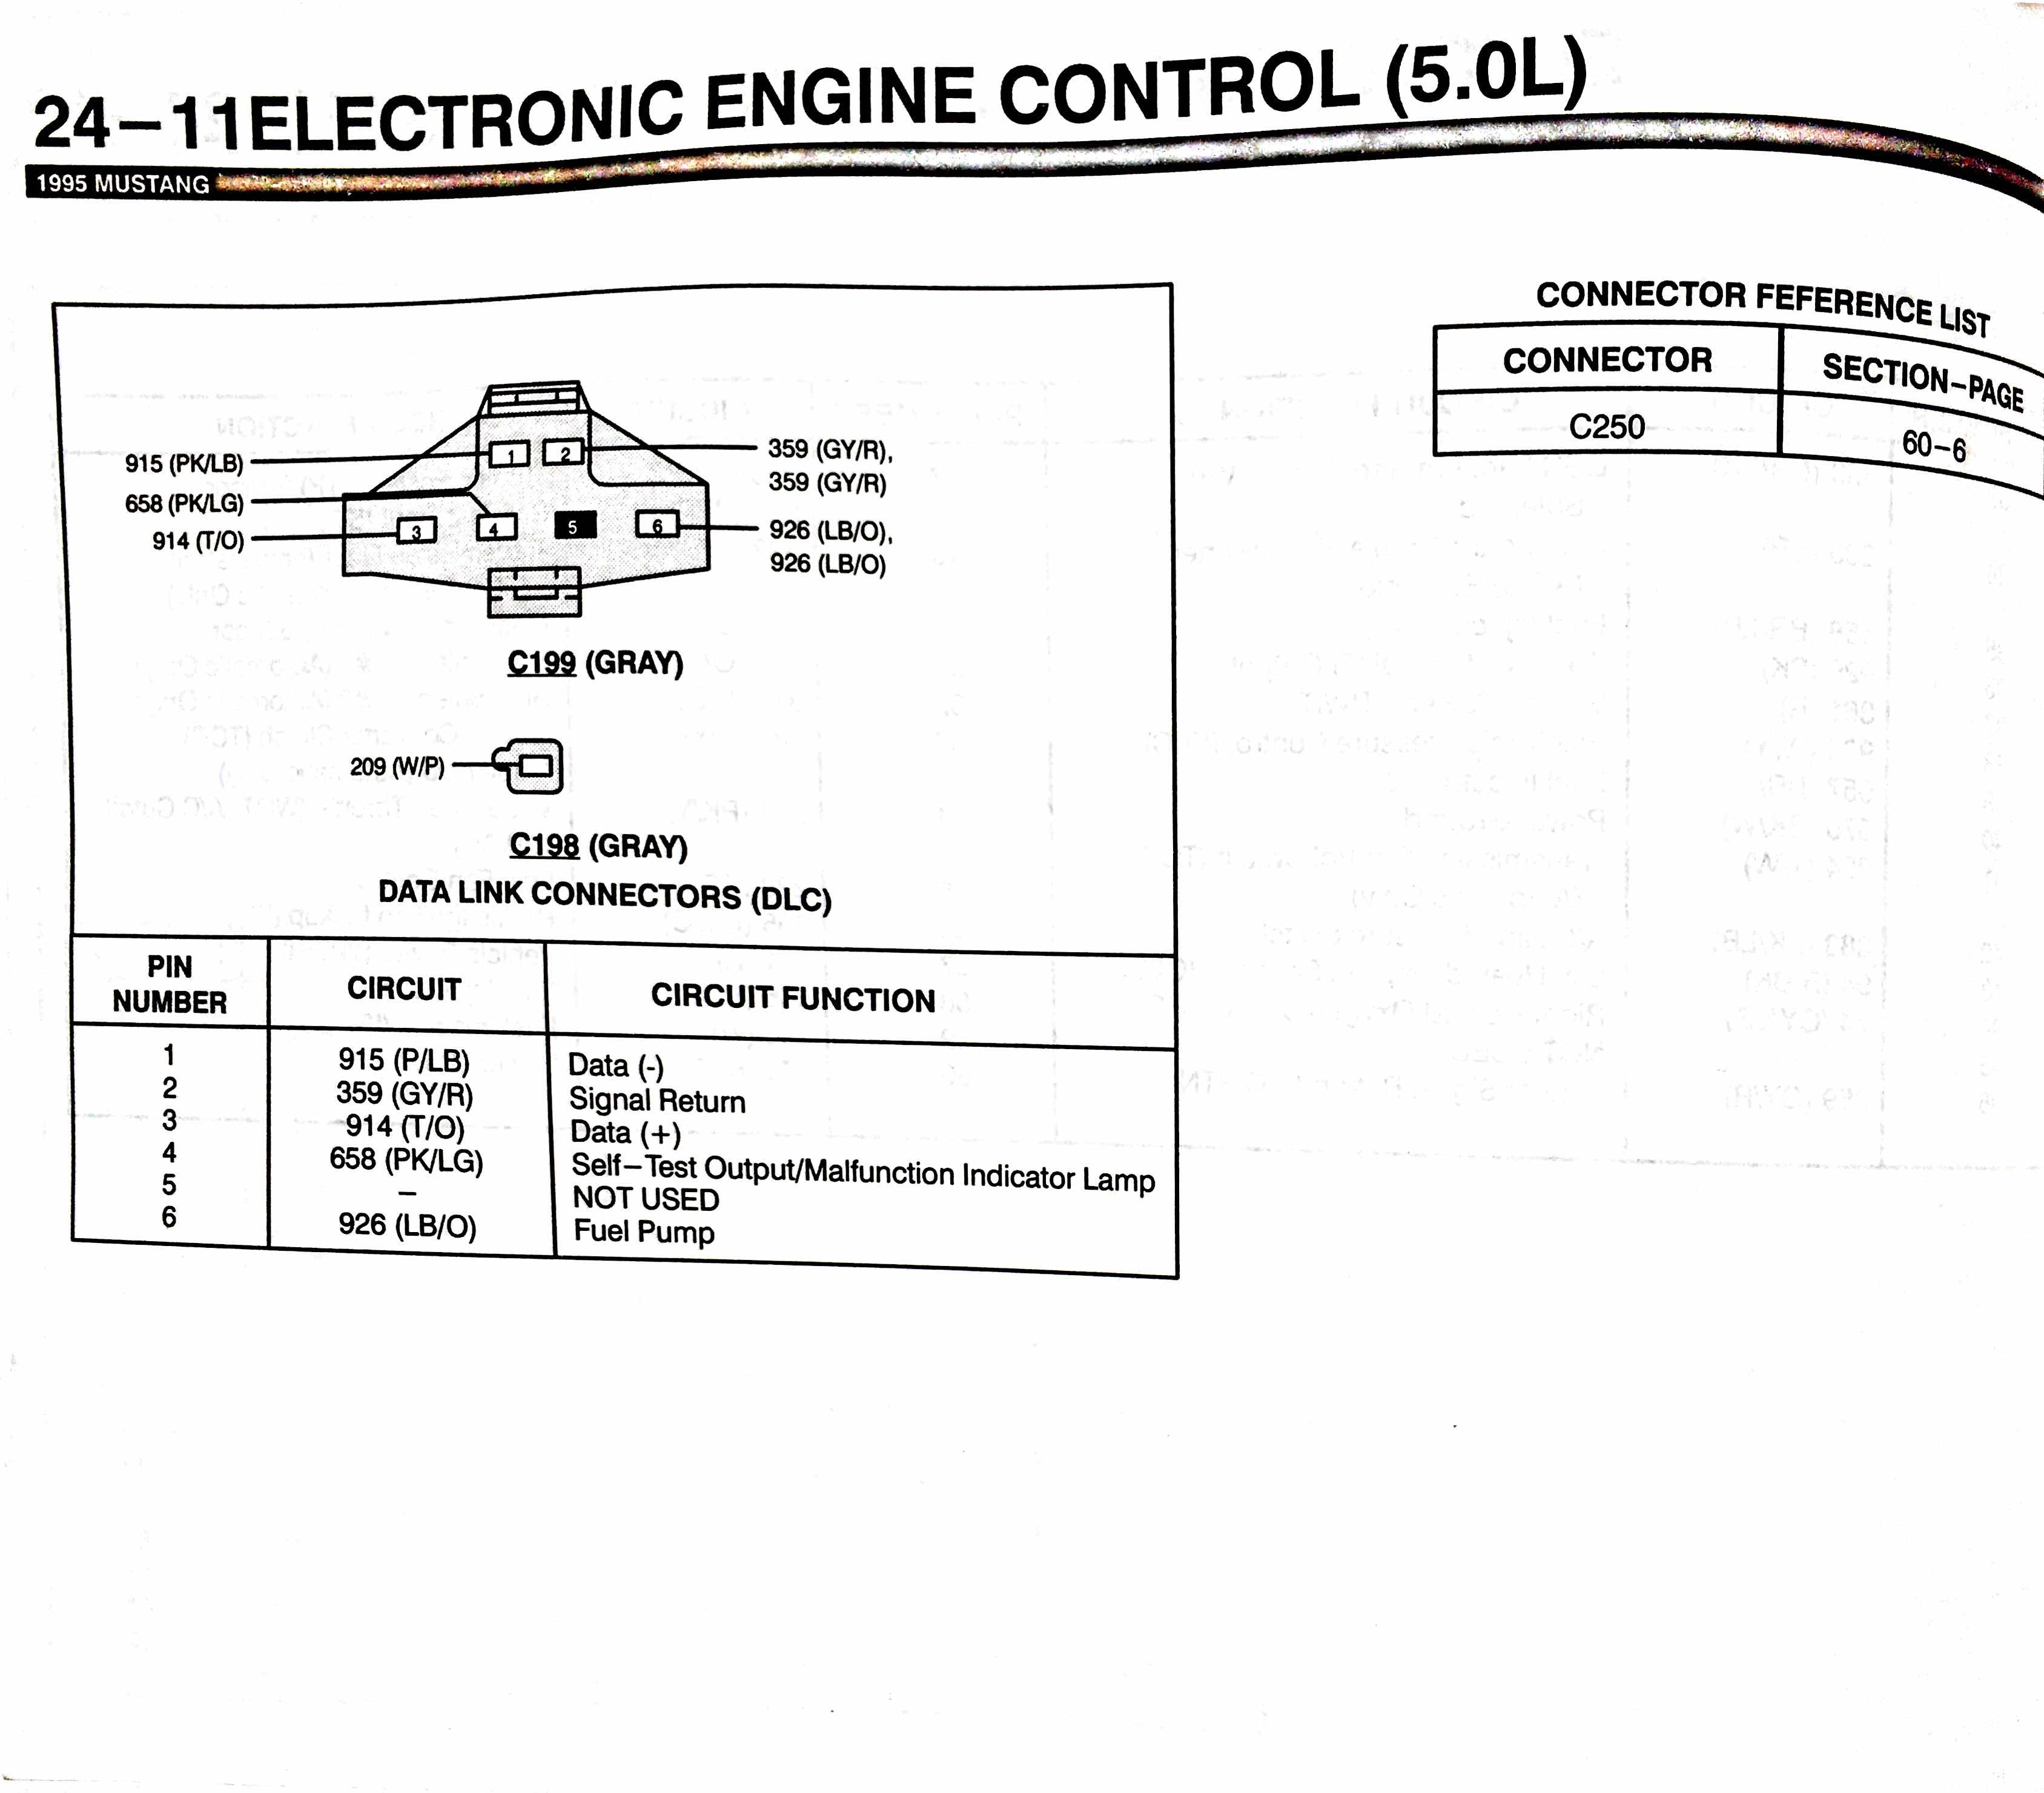 95 mustang gt wiring diagram typical sailboat sn95 engine exhaust catalog auto parts